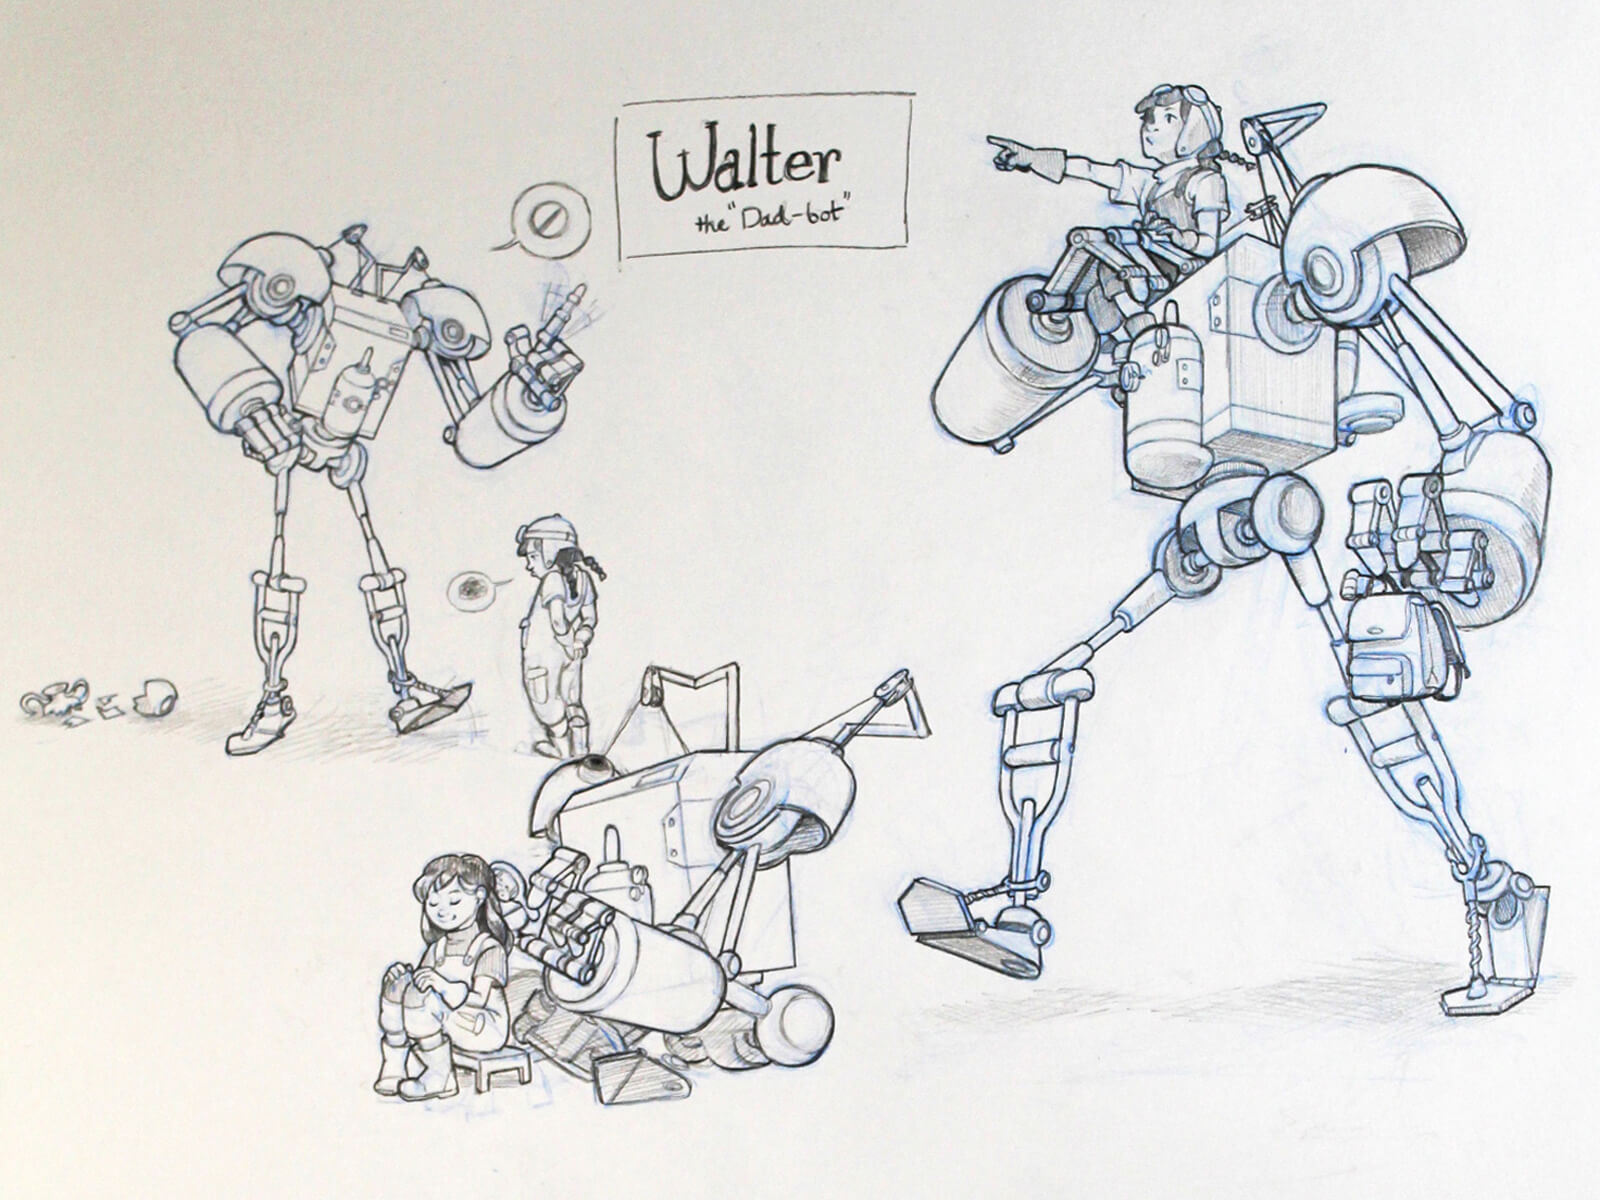 black and white drawings of a robot character named walter, one of which shows him carrying a girl on his shoulder